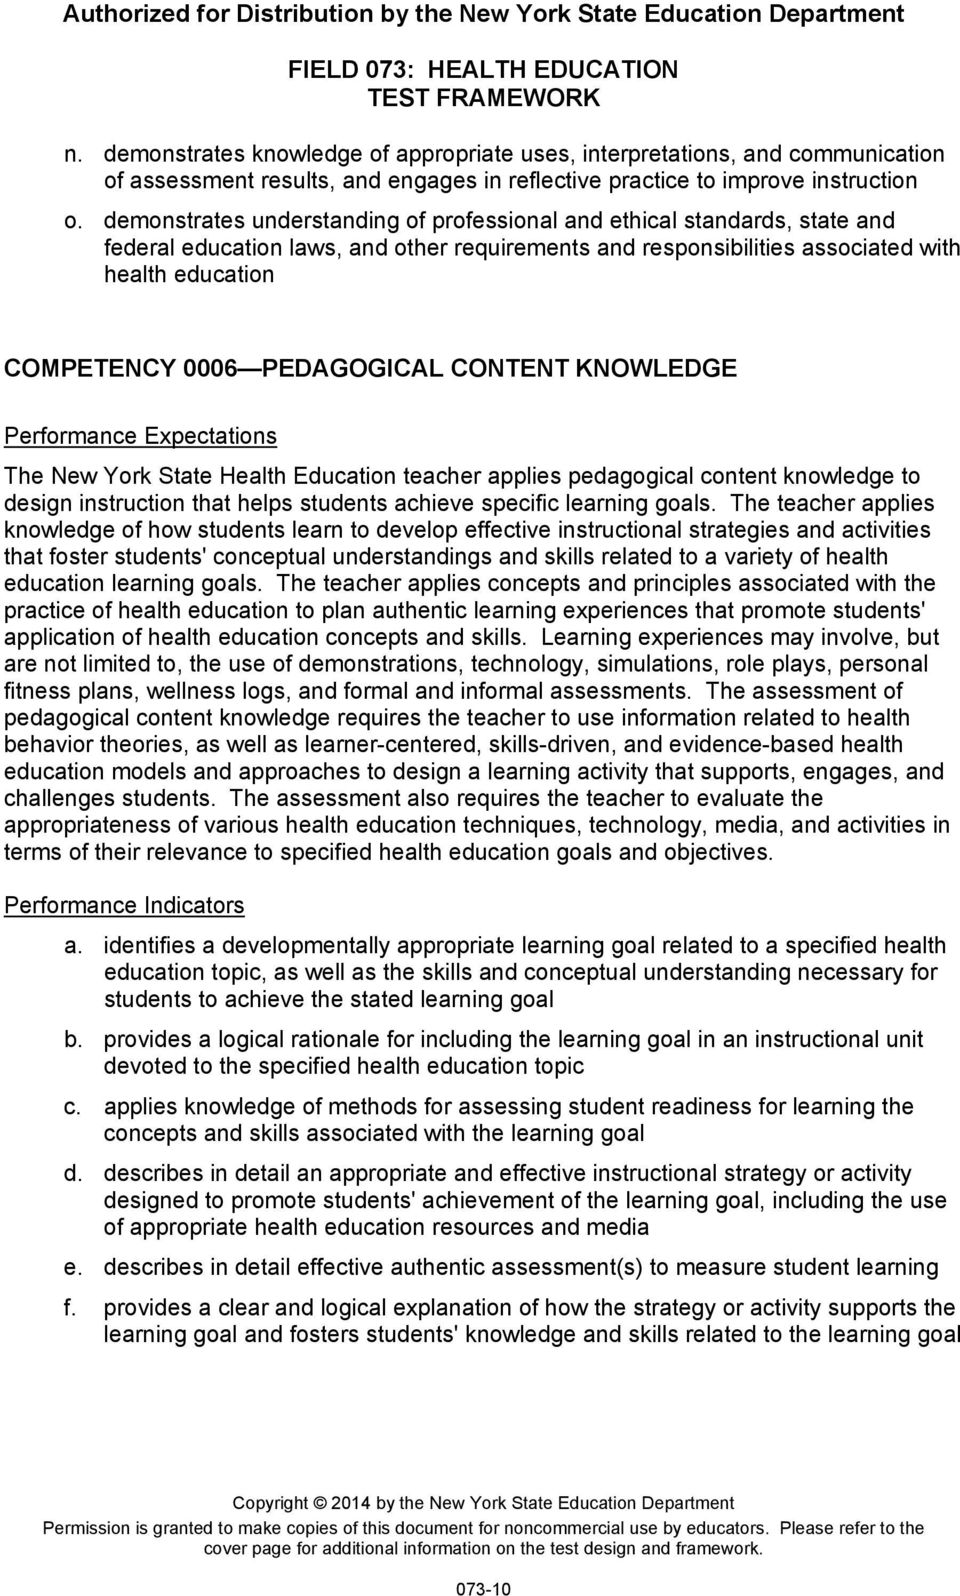 PEDAGOGICAL CONTENT KNOWLEDGE The New York State Health Education teacher applies pedagogical content knowledge to design instruction that helps students achieve specific learning goals.